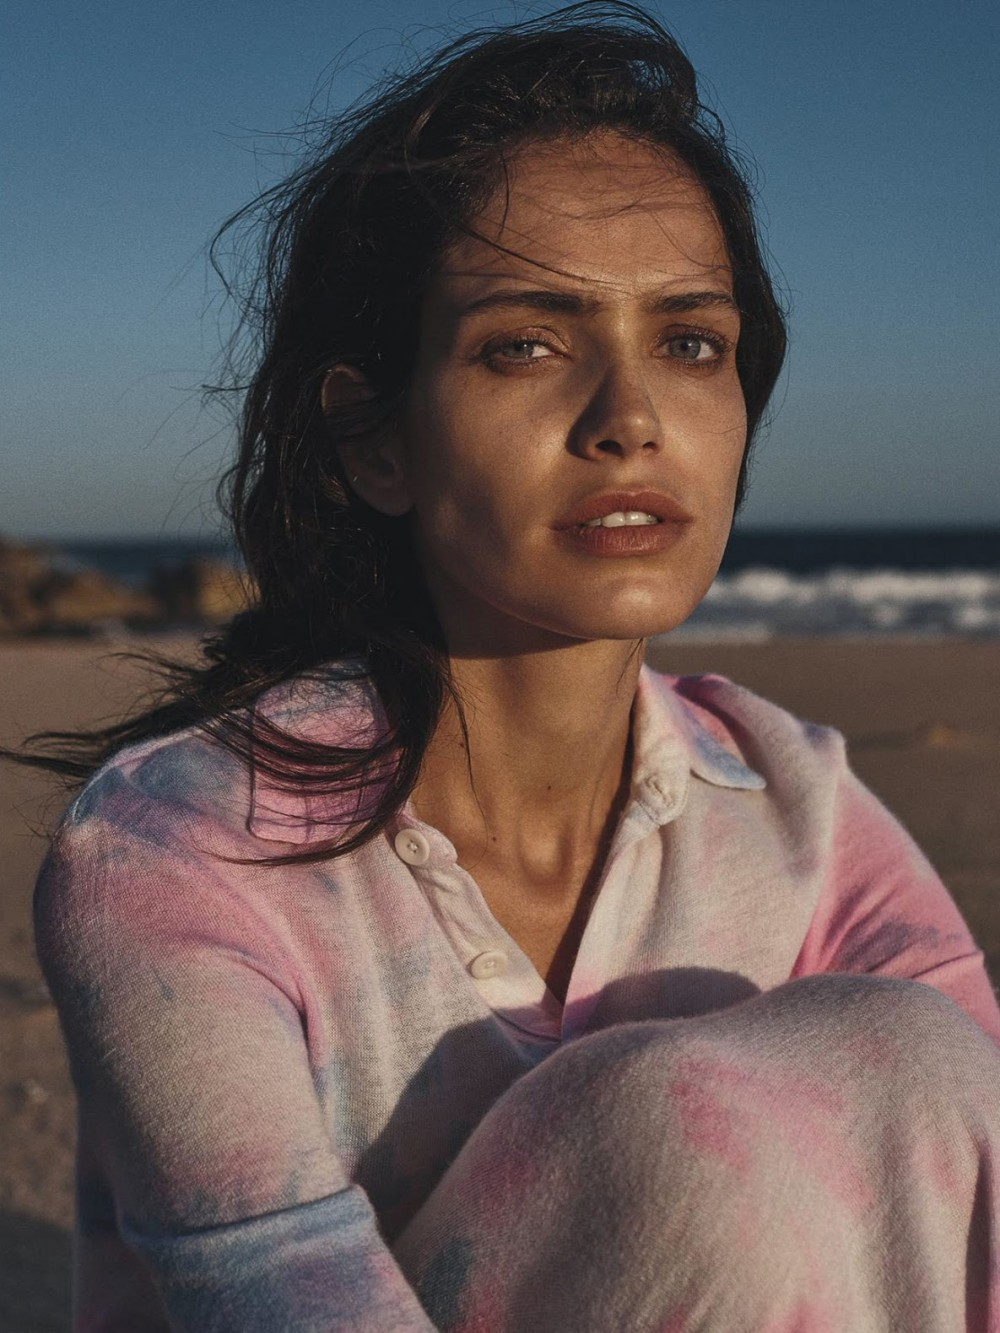 Amanda Wellsh by Benny Horne for Vogue Australia February 2016